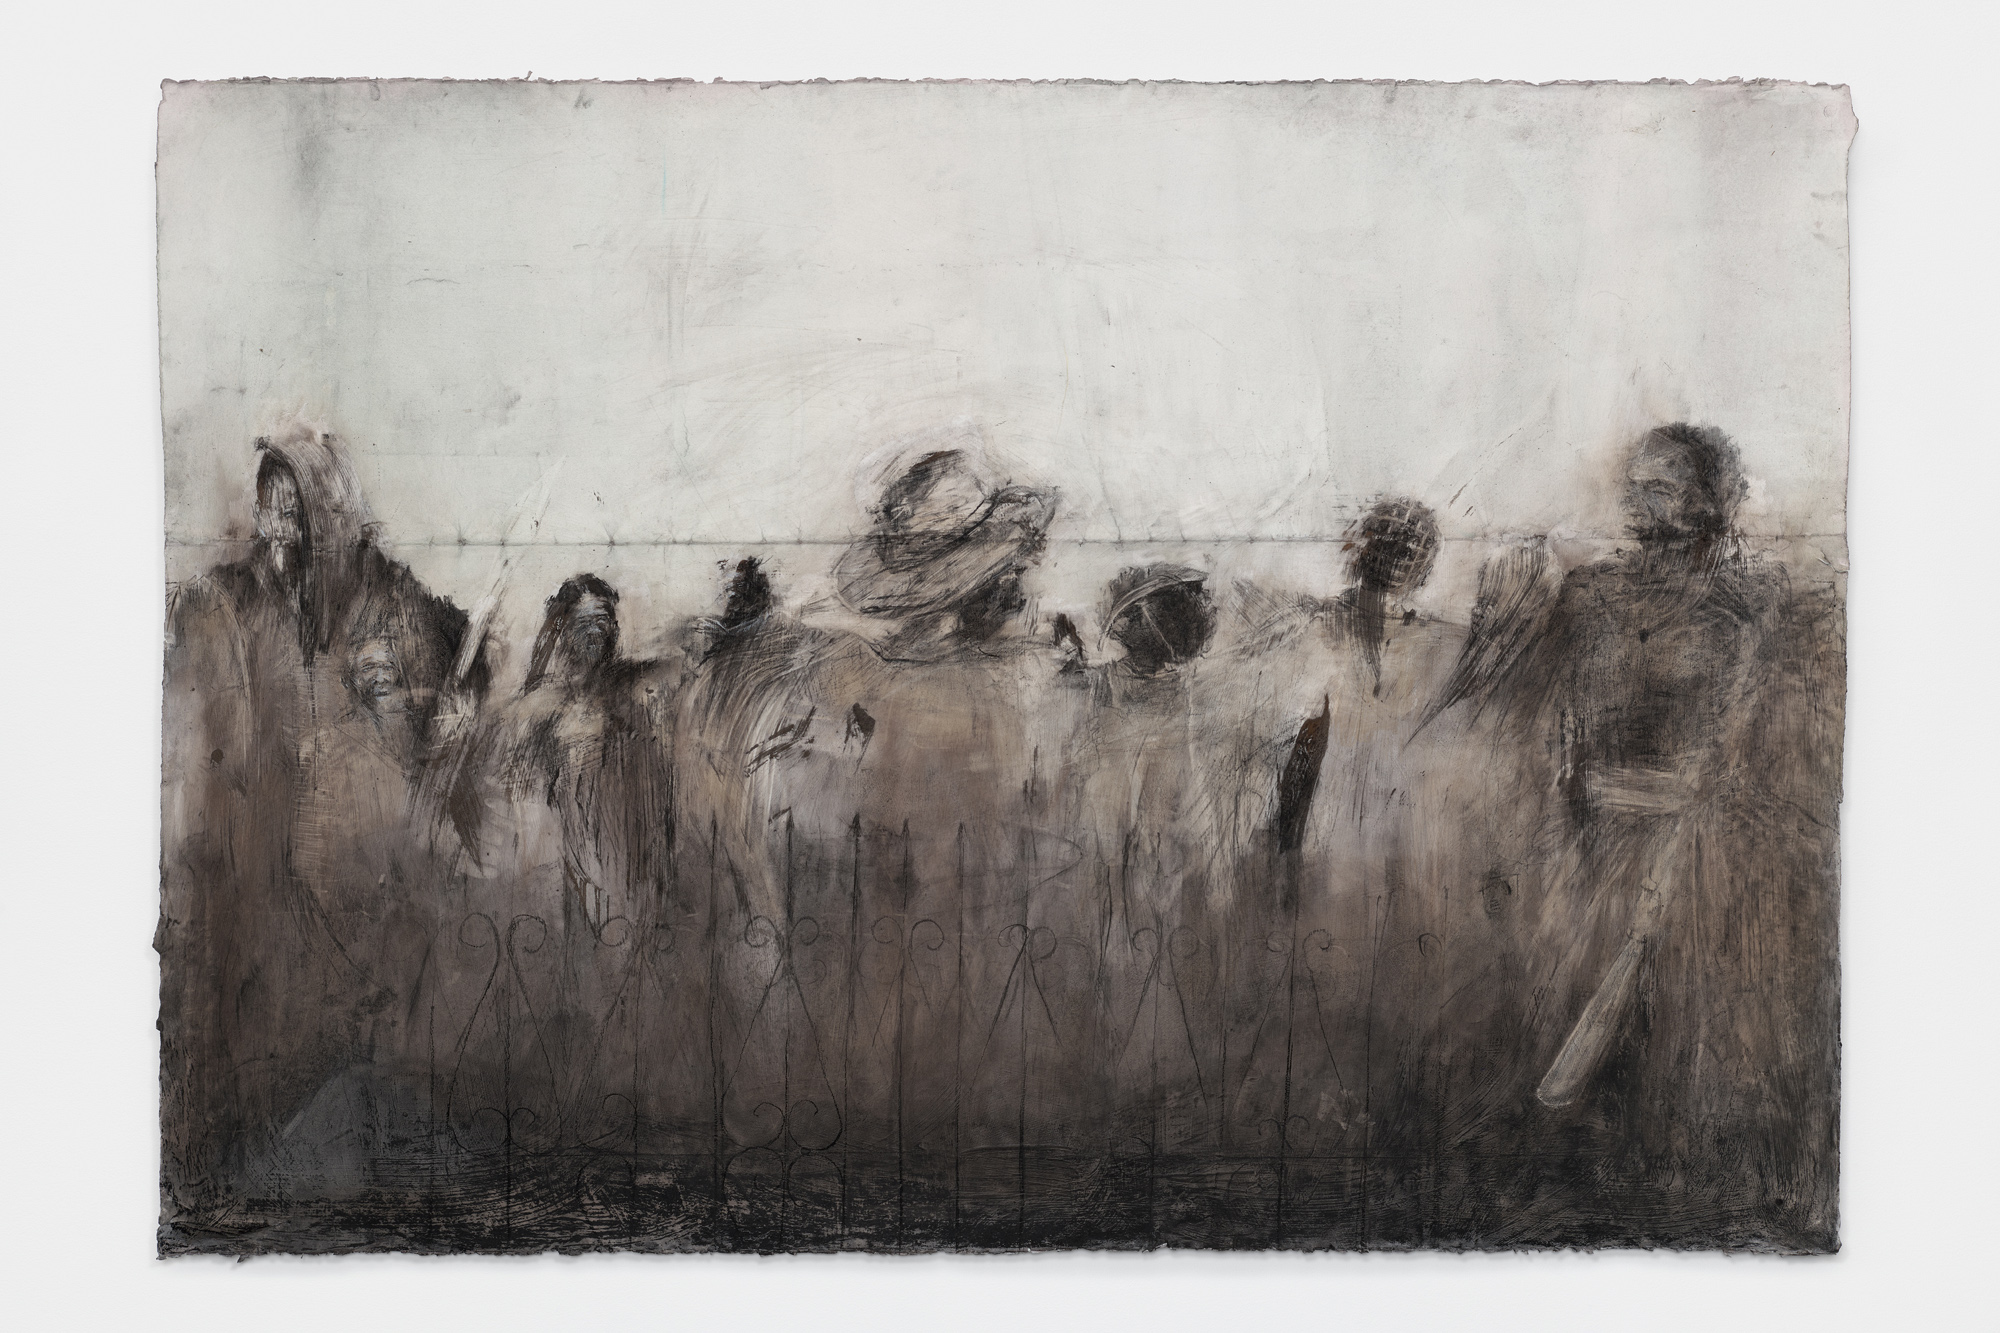 Black and white drawing of a group of ghostly human figures with indistinct features